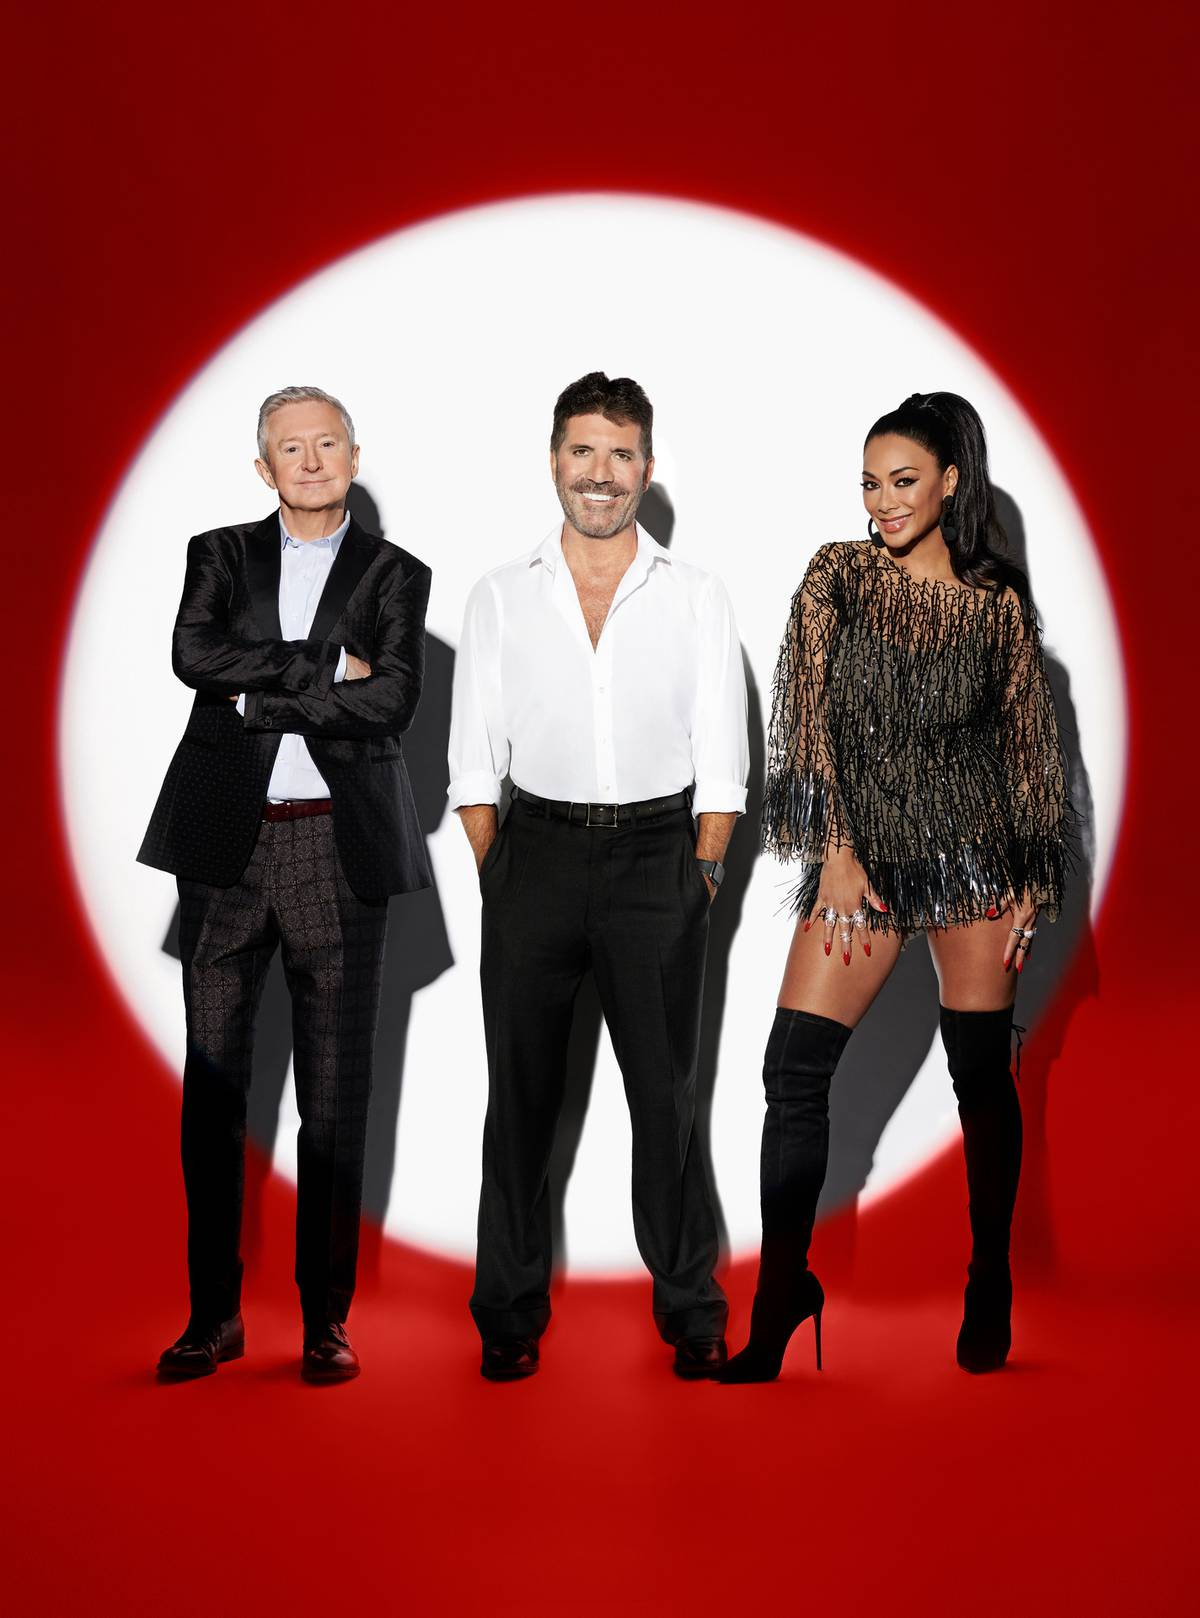 Kiwi Brendan Cole and The Vixen from The Chase among karaoke kings and queens lining up for X Factor: Celebrity